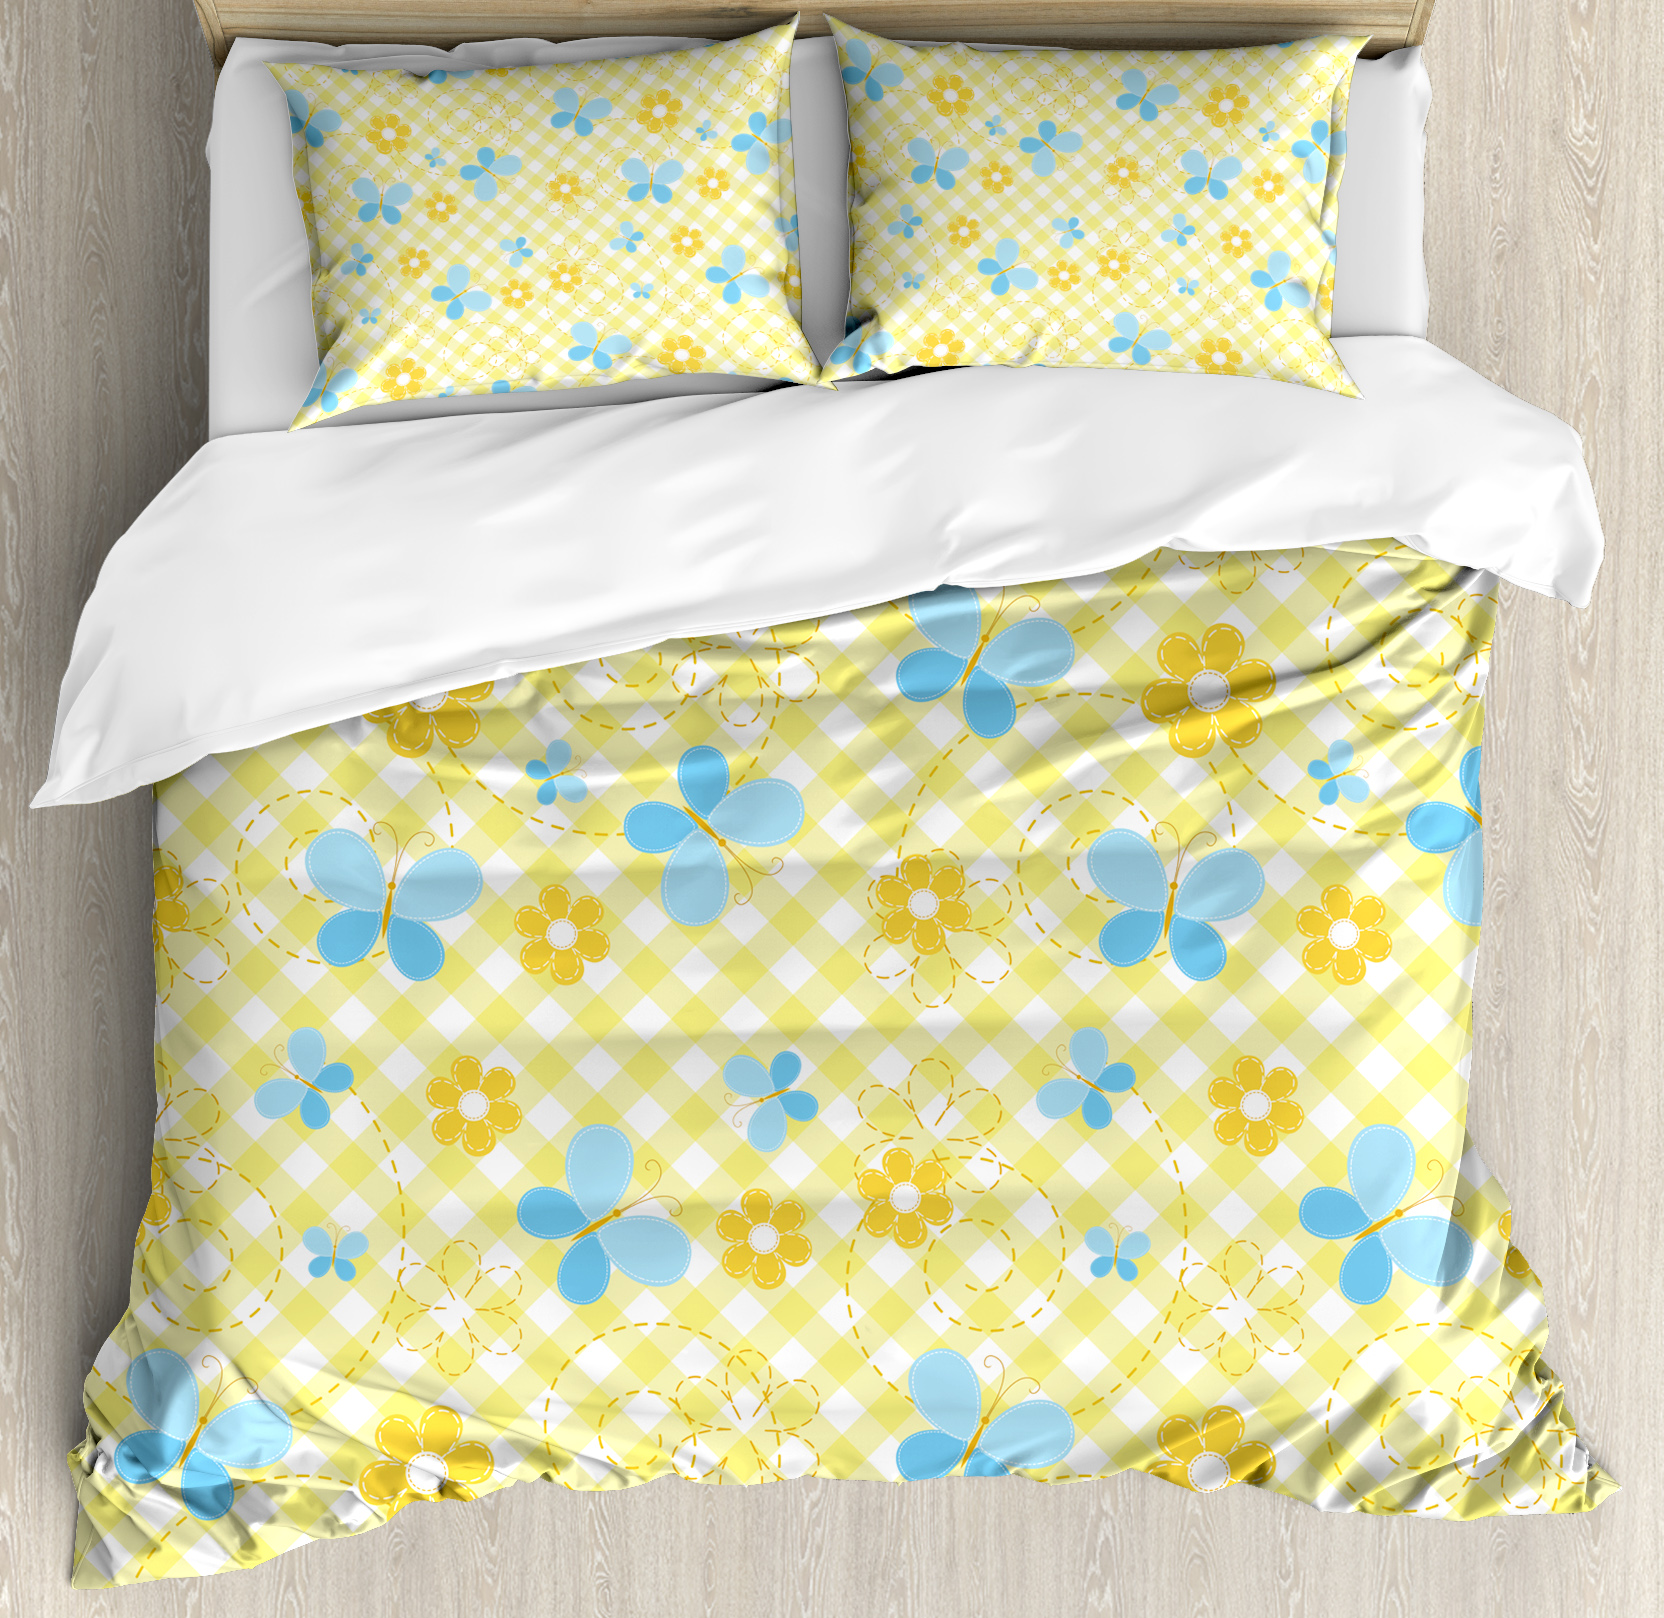 Checkered Queen Size Duvet Cover Set, Kids Pattern with Daisy Flower Figures and Cute Butterflies, Decorative 3 Piece Bedding Set with 2 Pillow Shams, Yellow Baby Blue Pale Blue, by Ambesonne